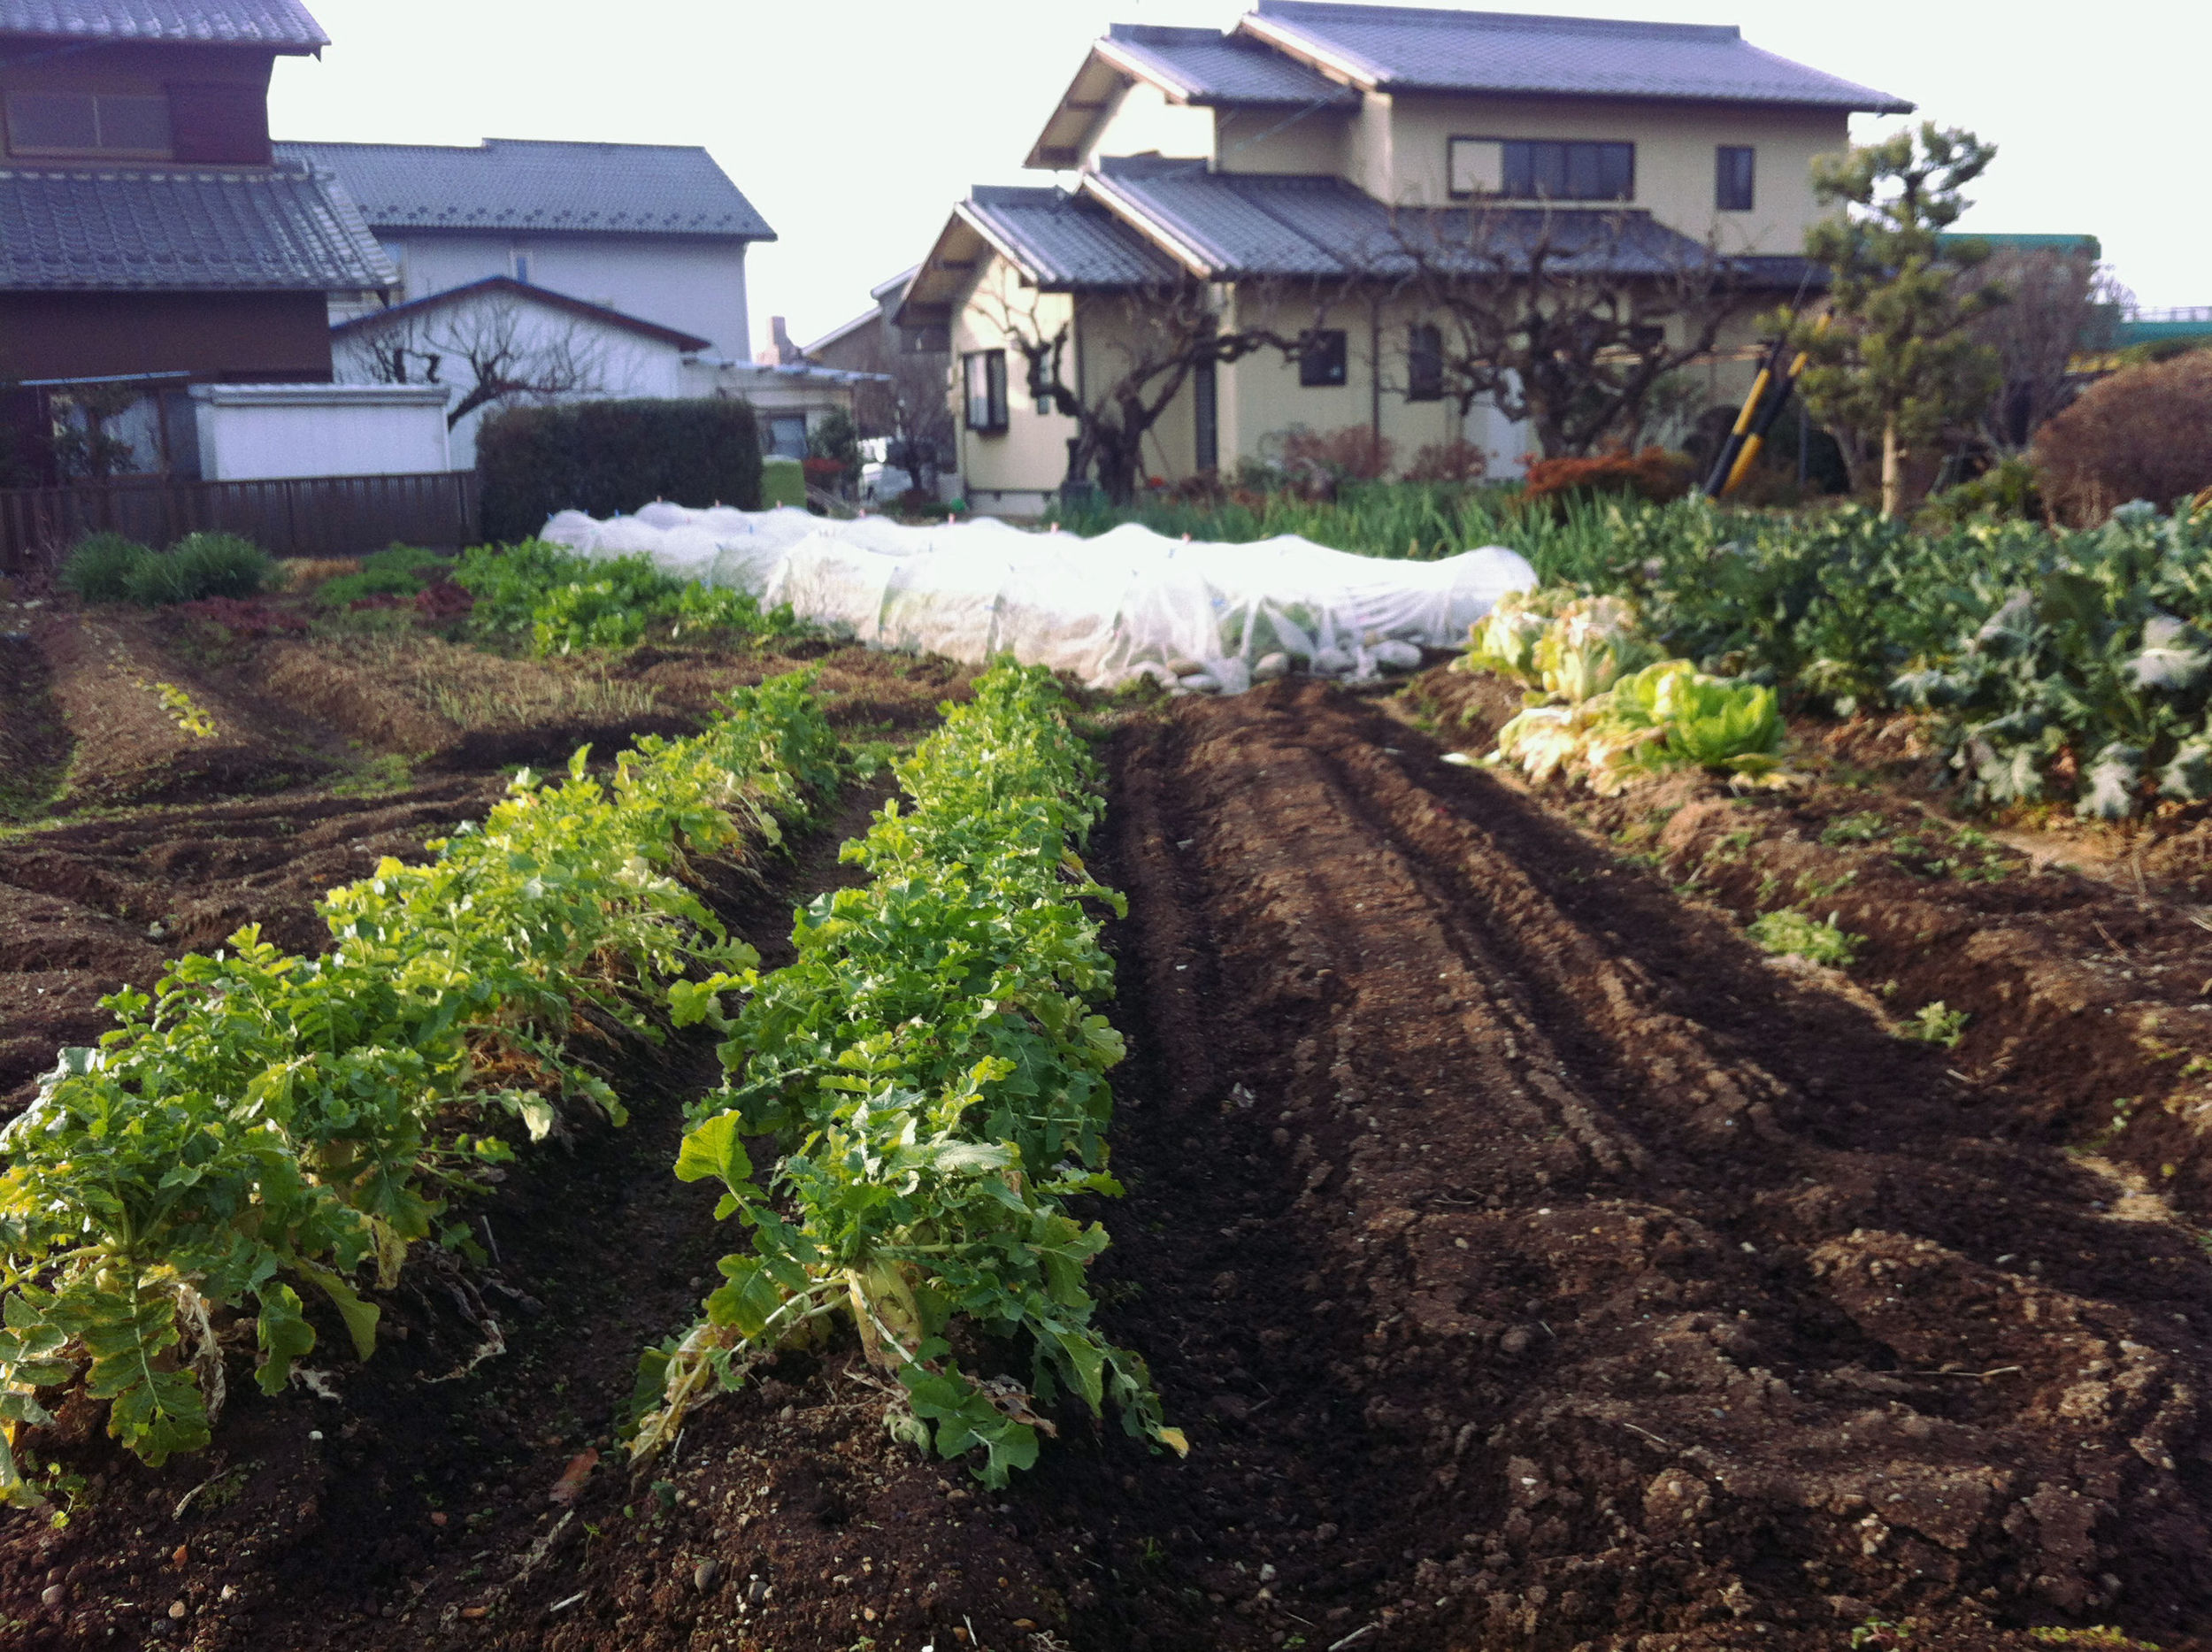 Many vegetables growing even though it's in the middle of winter!